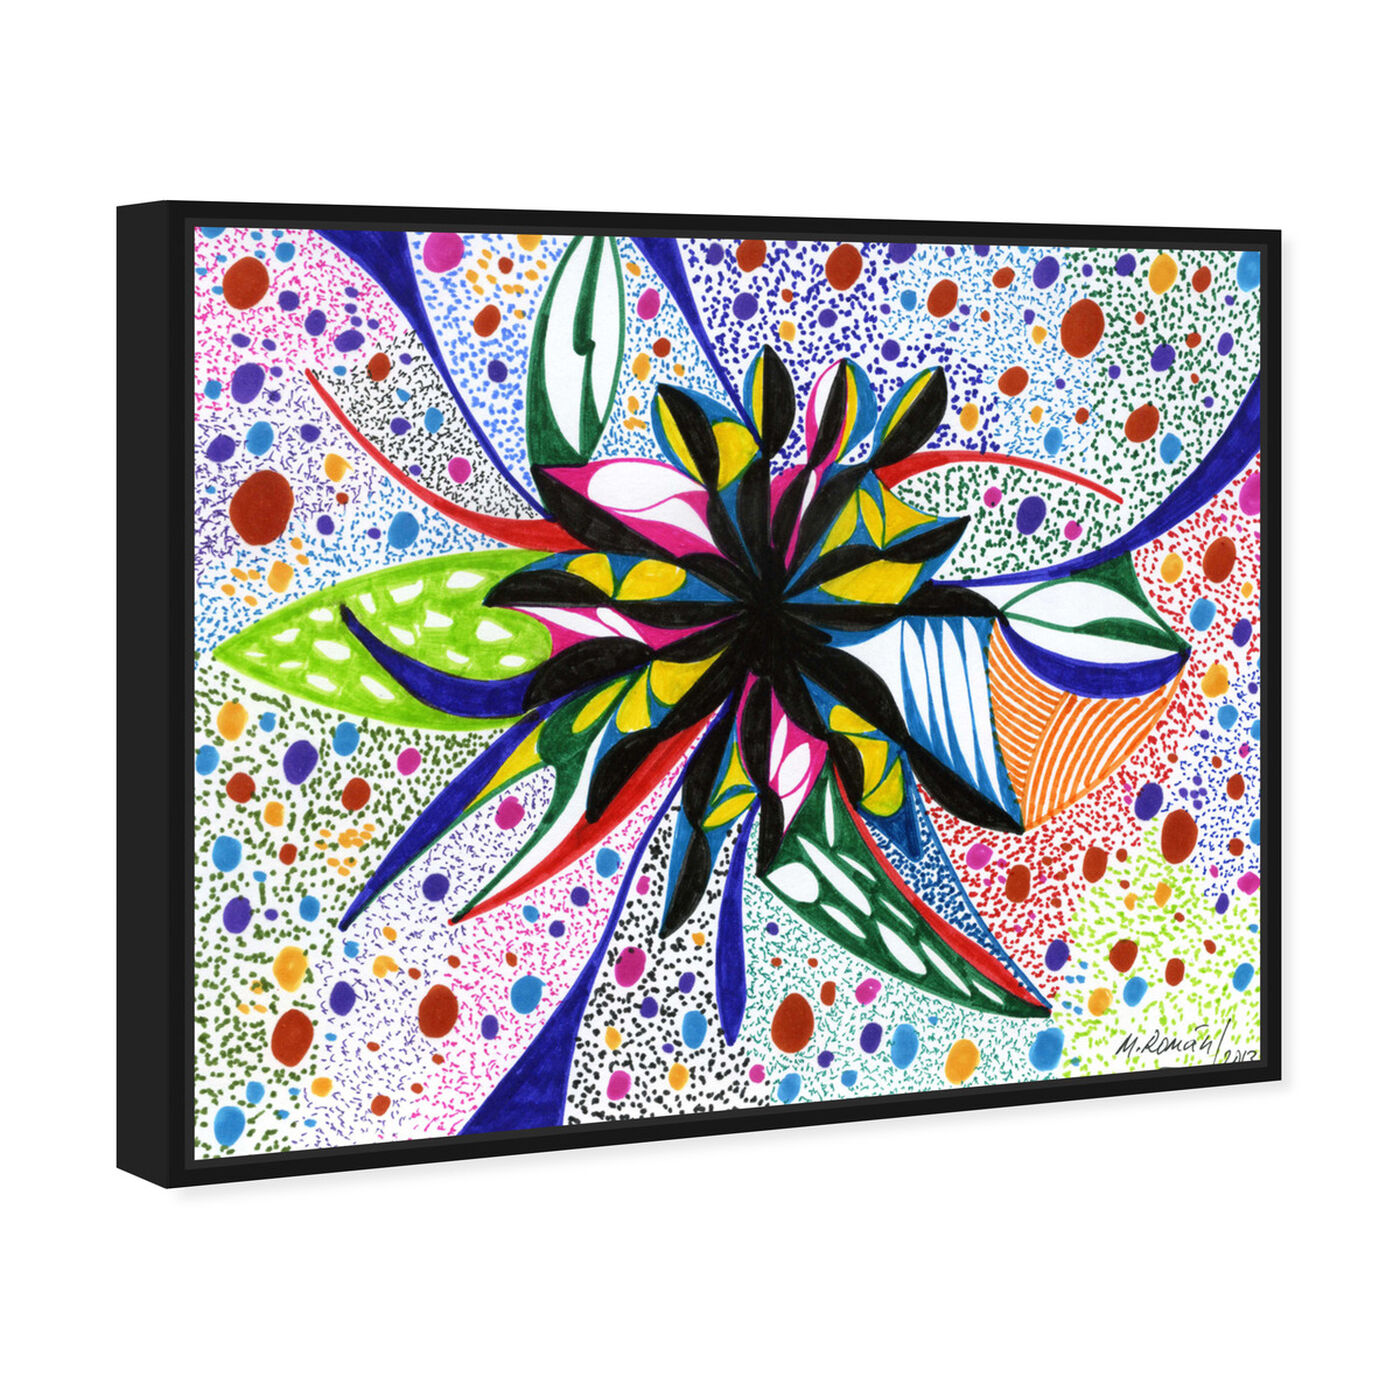 Angled view of Bromeliad featuring abstract and flowers art.